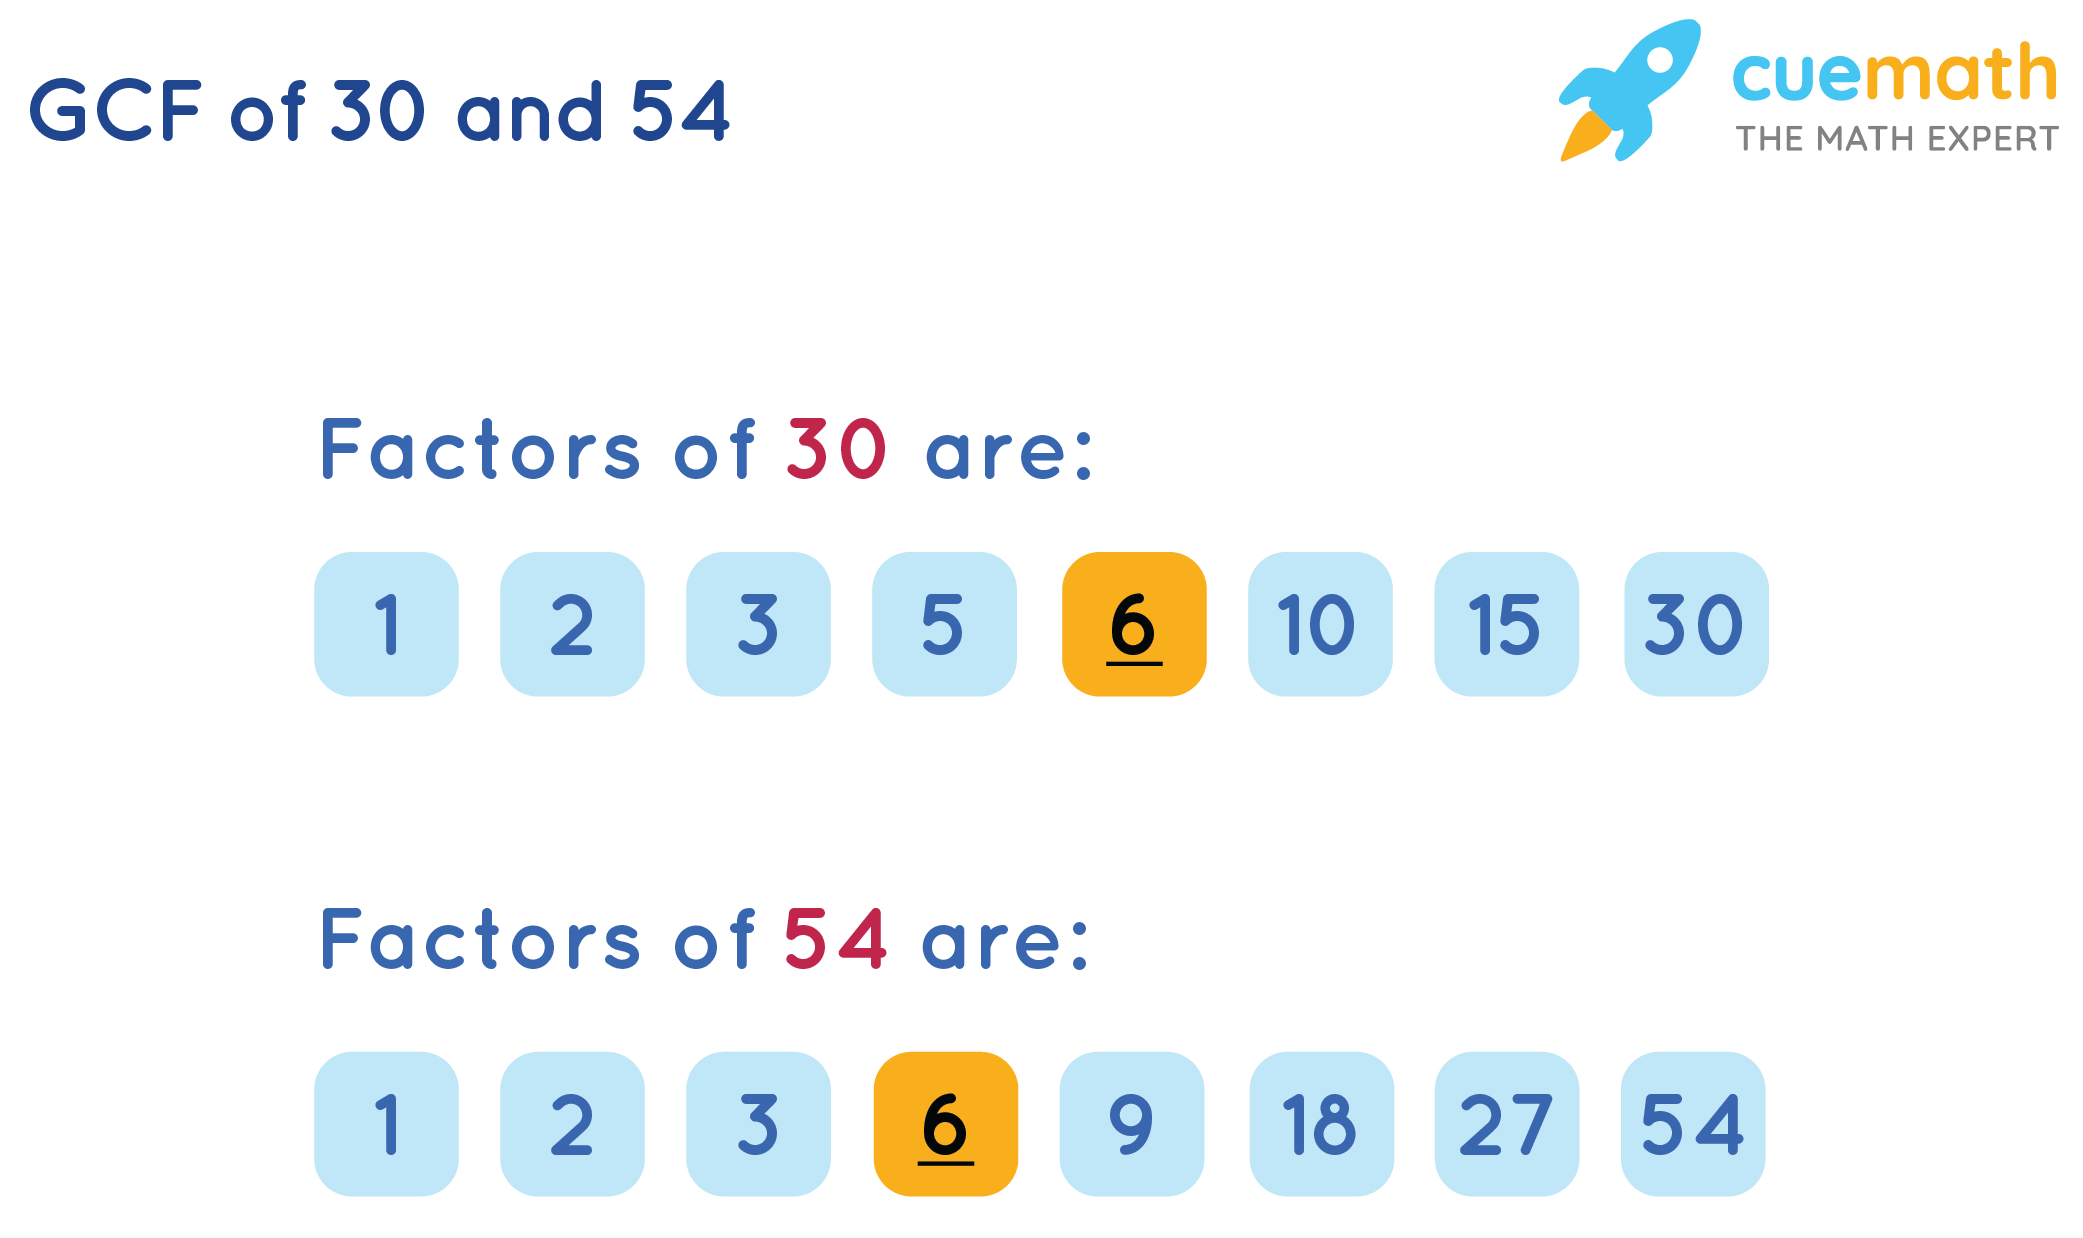 GCF of 30and 54by Listing the Common Factors